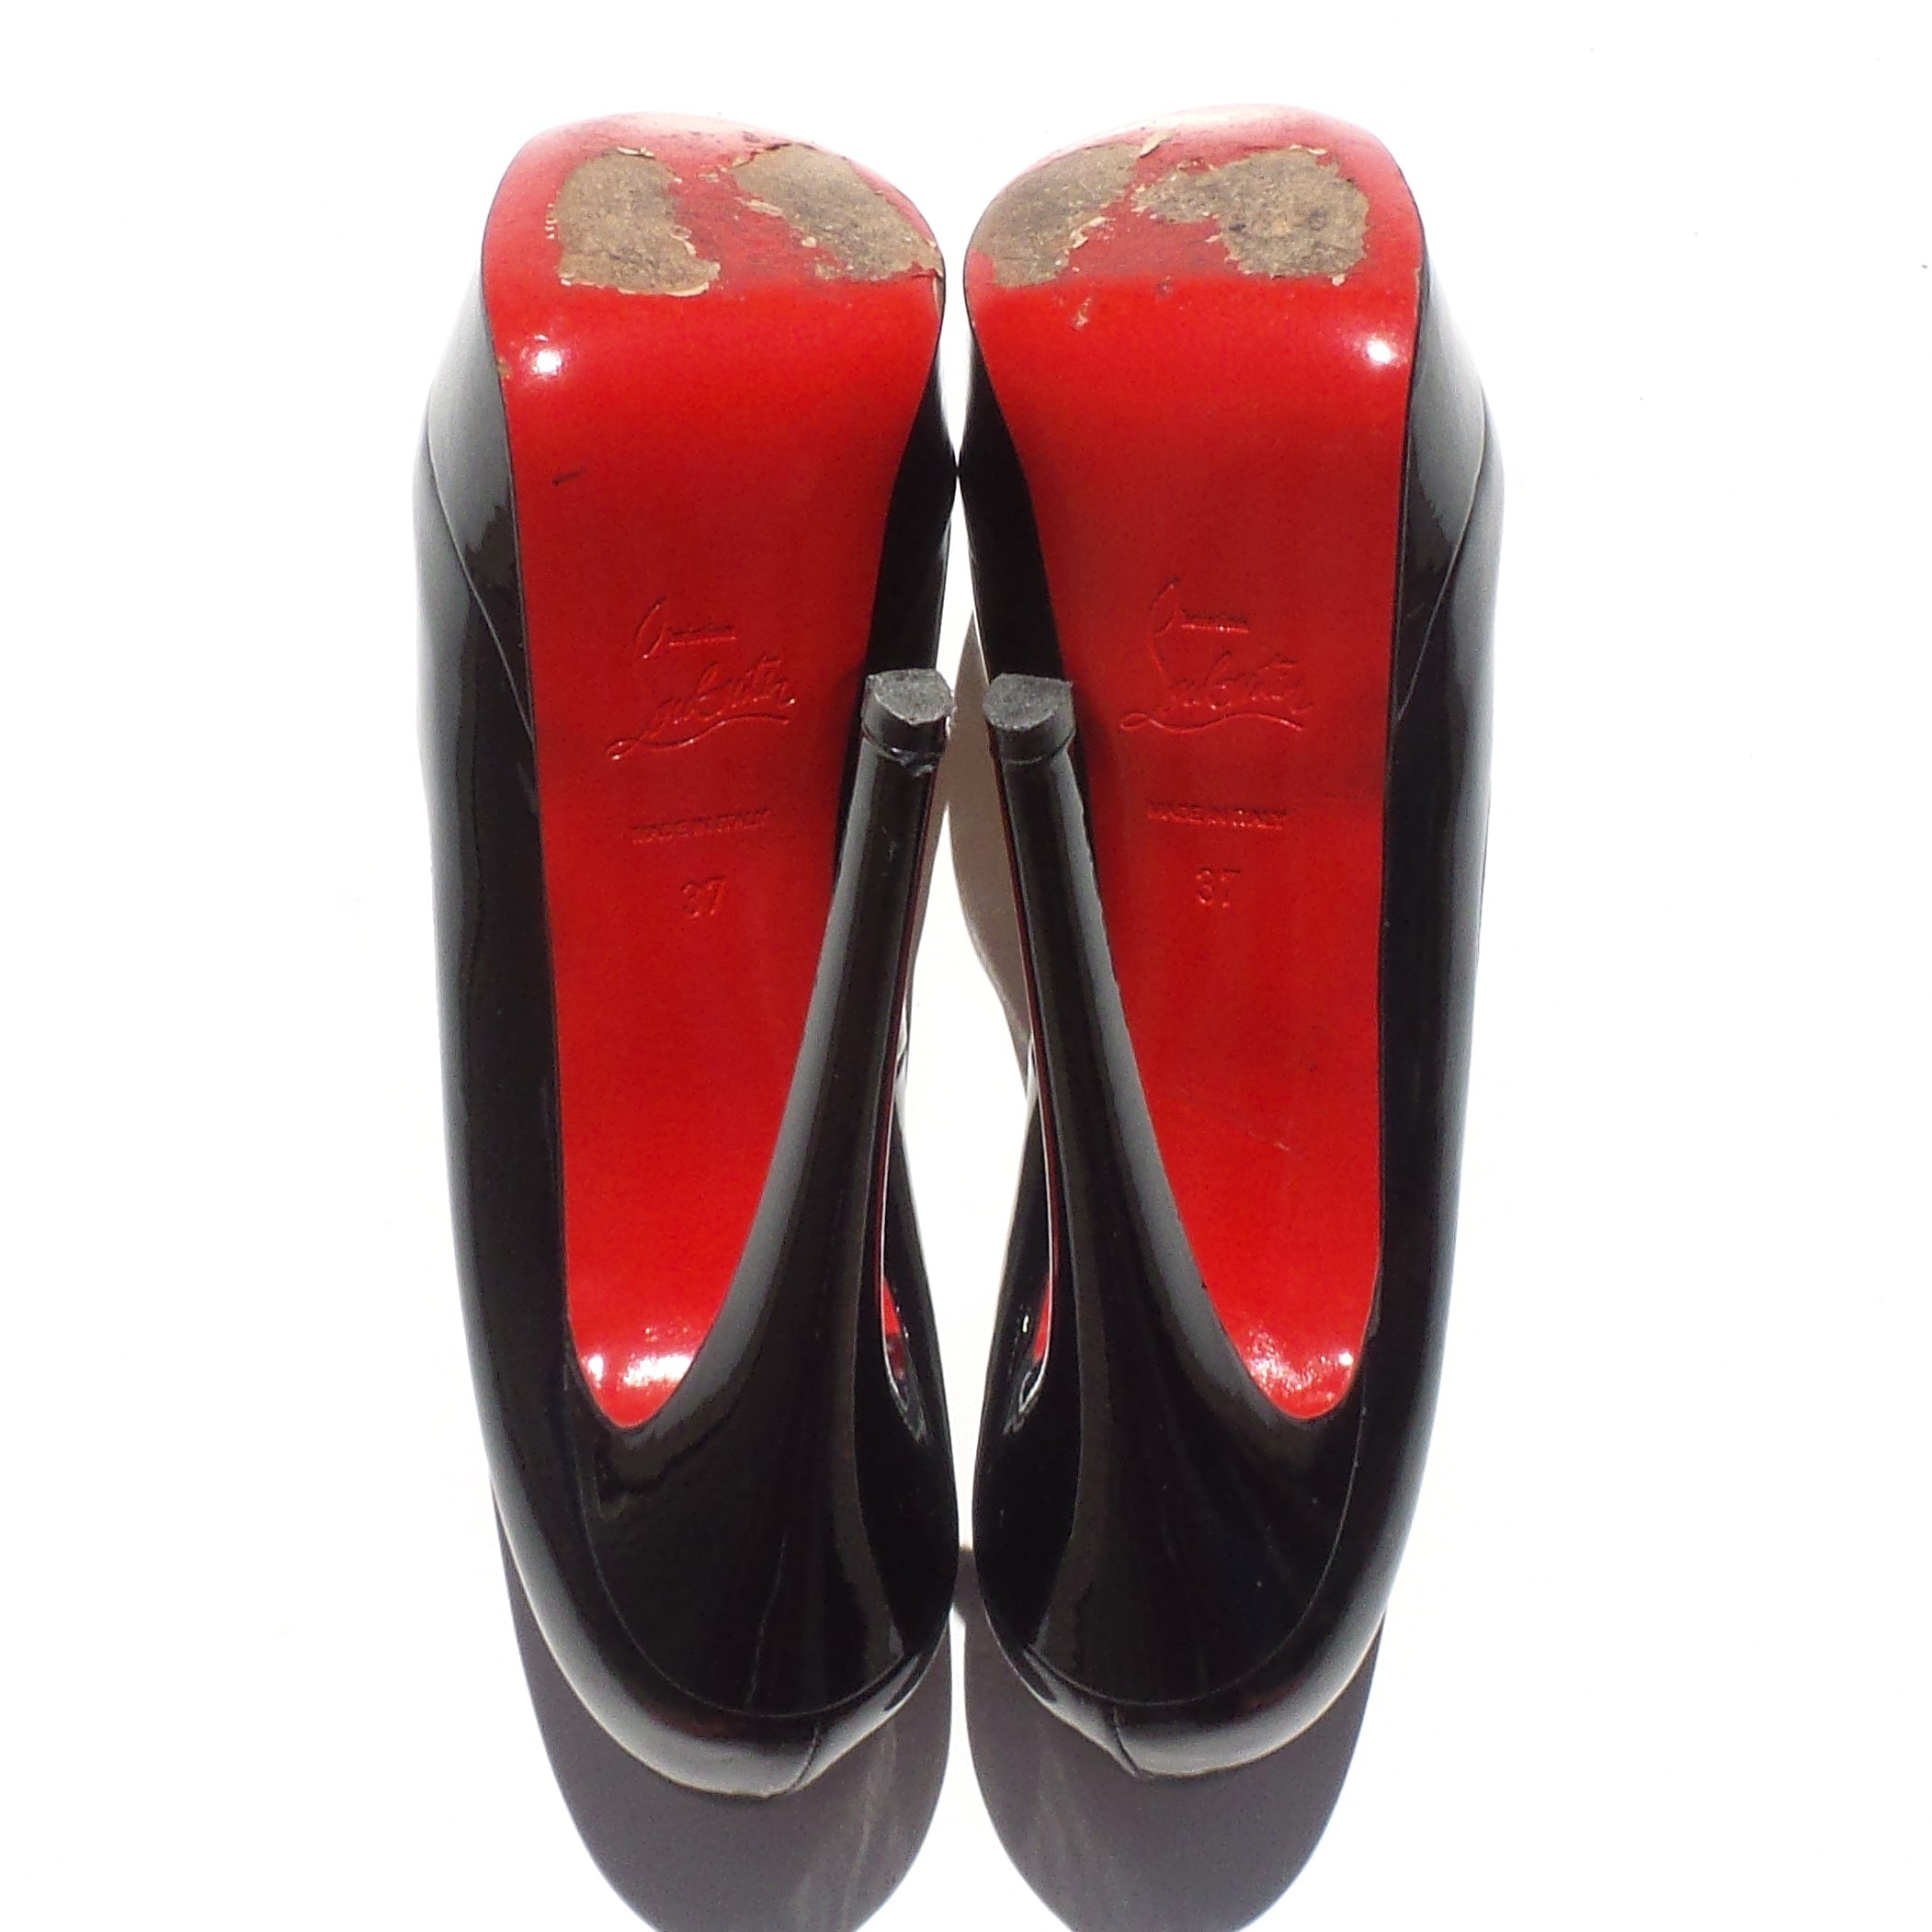 'Sold' $945 CHRISTIAN LOUBOUTIN Black Patent Leather Lady Peep 150 Platform Pumps 37 GC